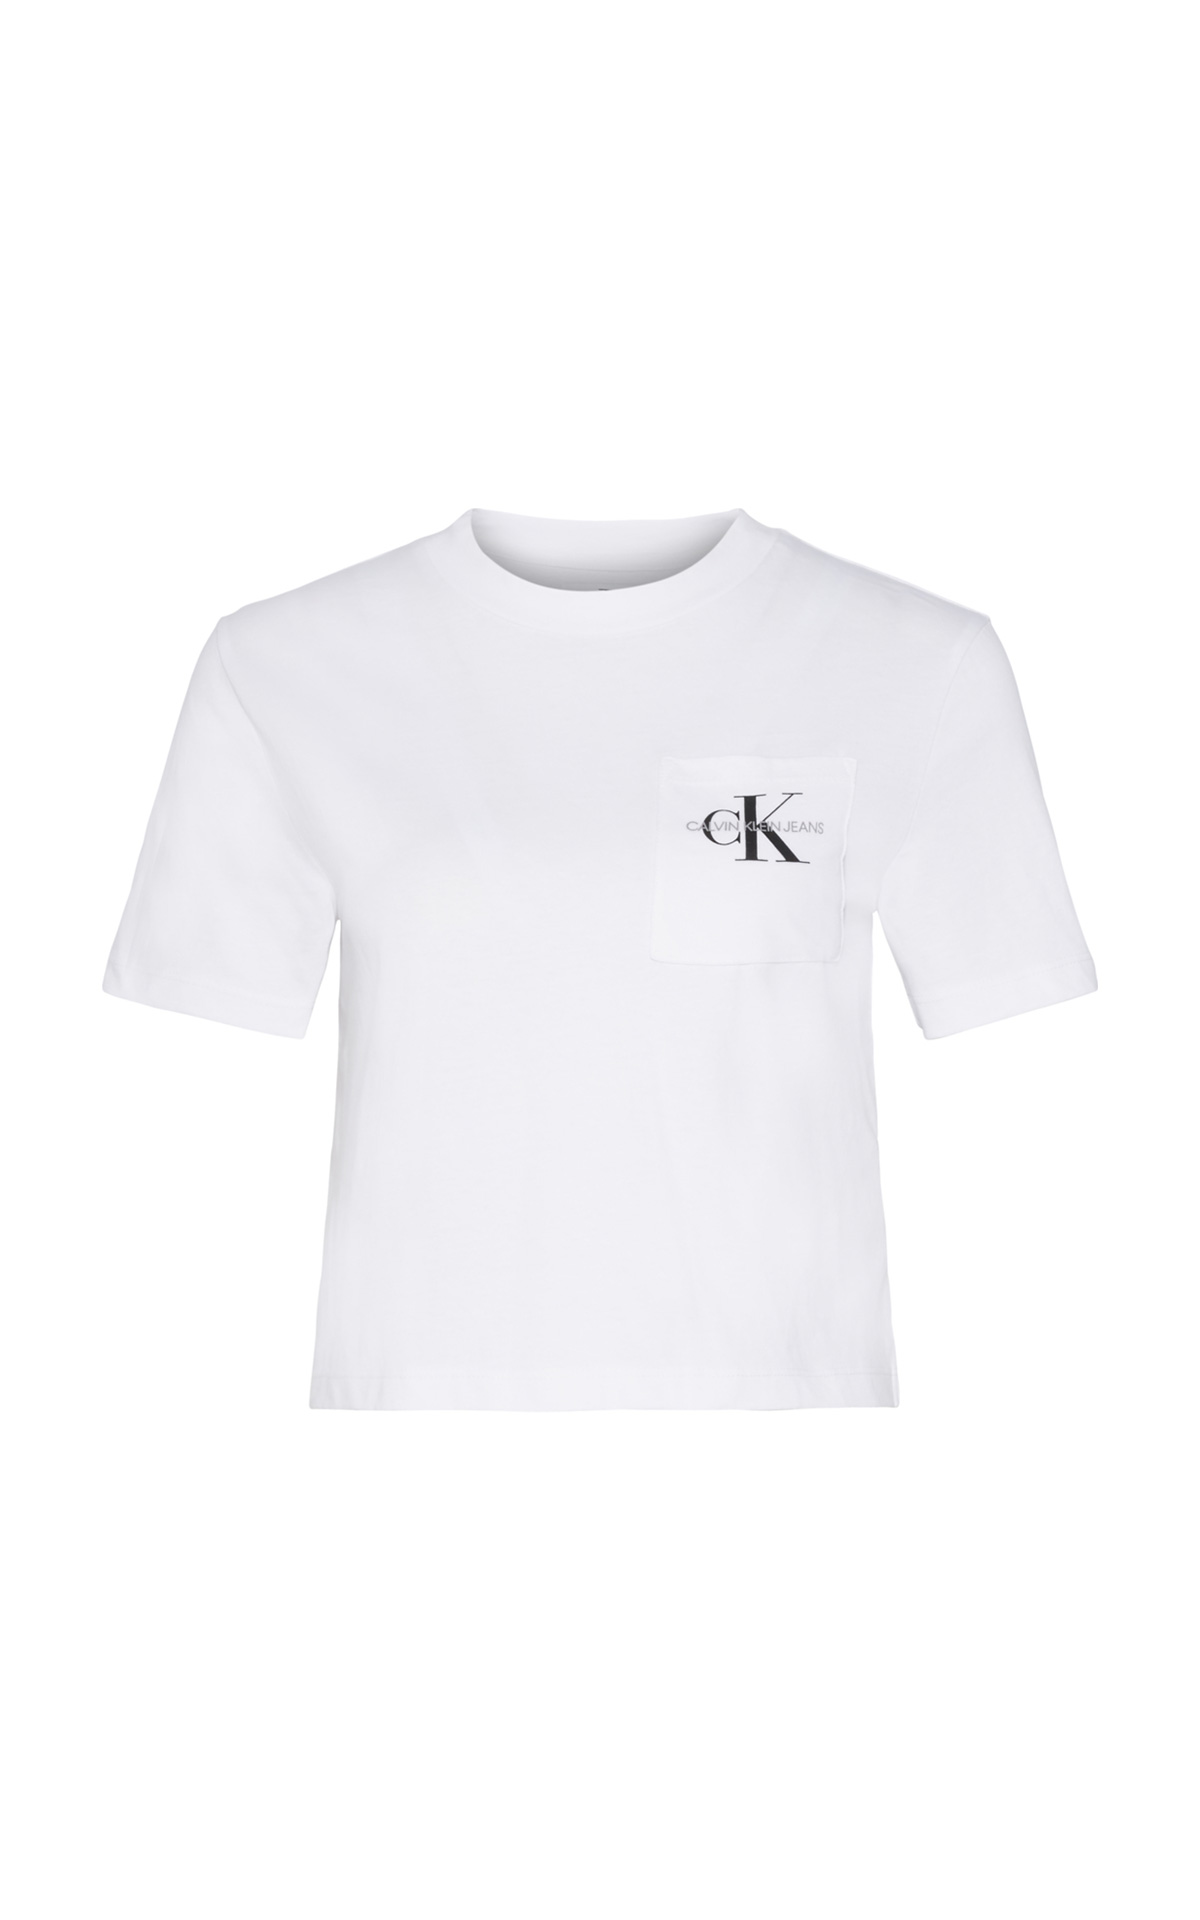 Calvin Klein t-shirt at The Bicester Village Shopping Collection